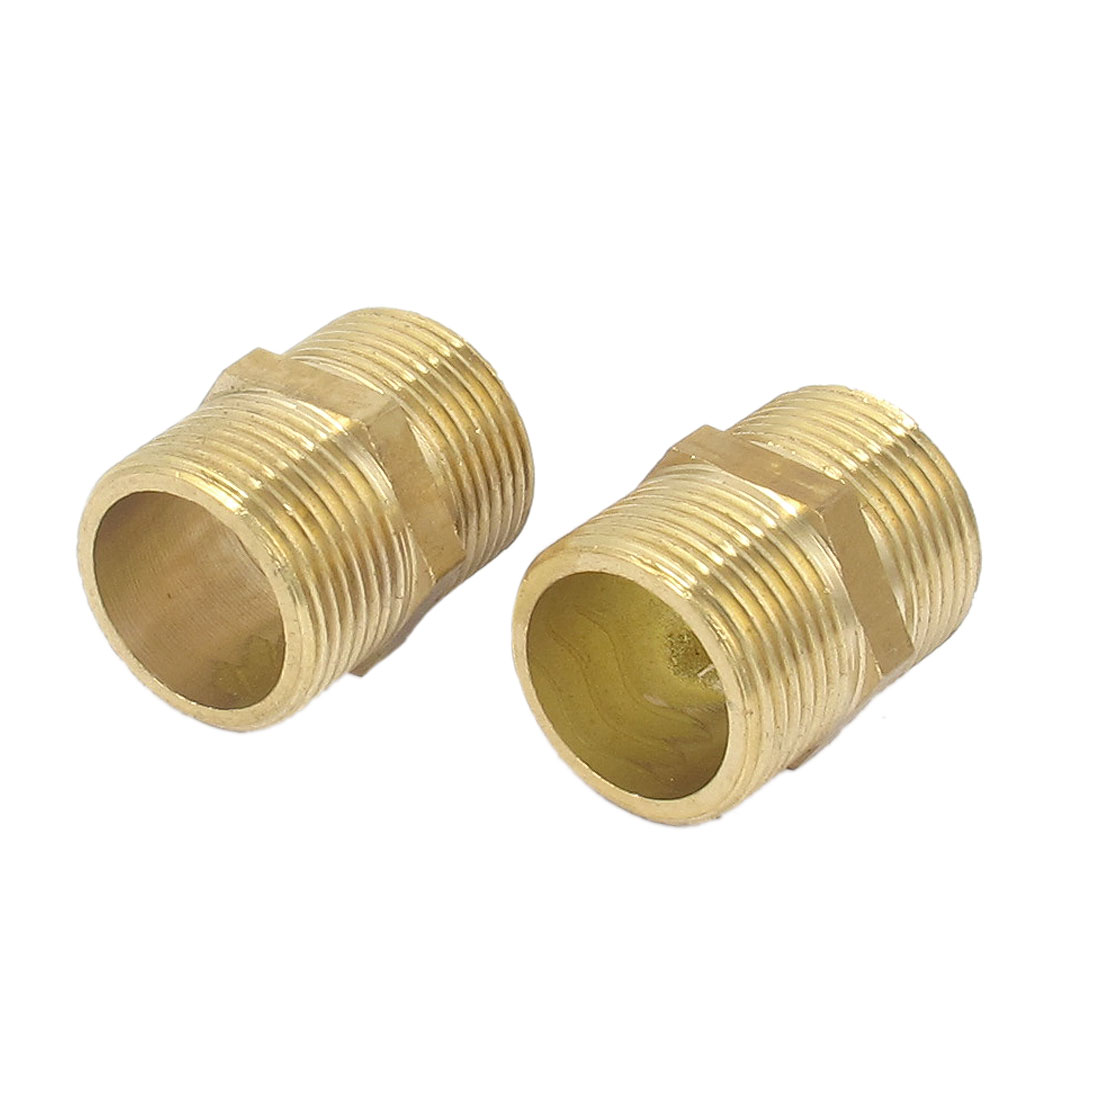 2Pcs 3/4BSP to 3/4BSP Male Thread Brass Pipe Hex Nipple Fitting Quick Adapter